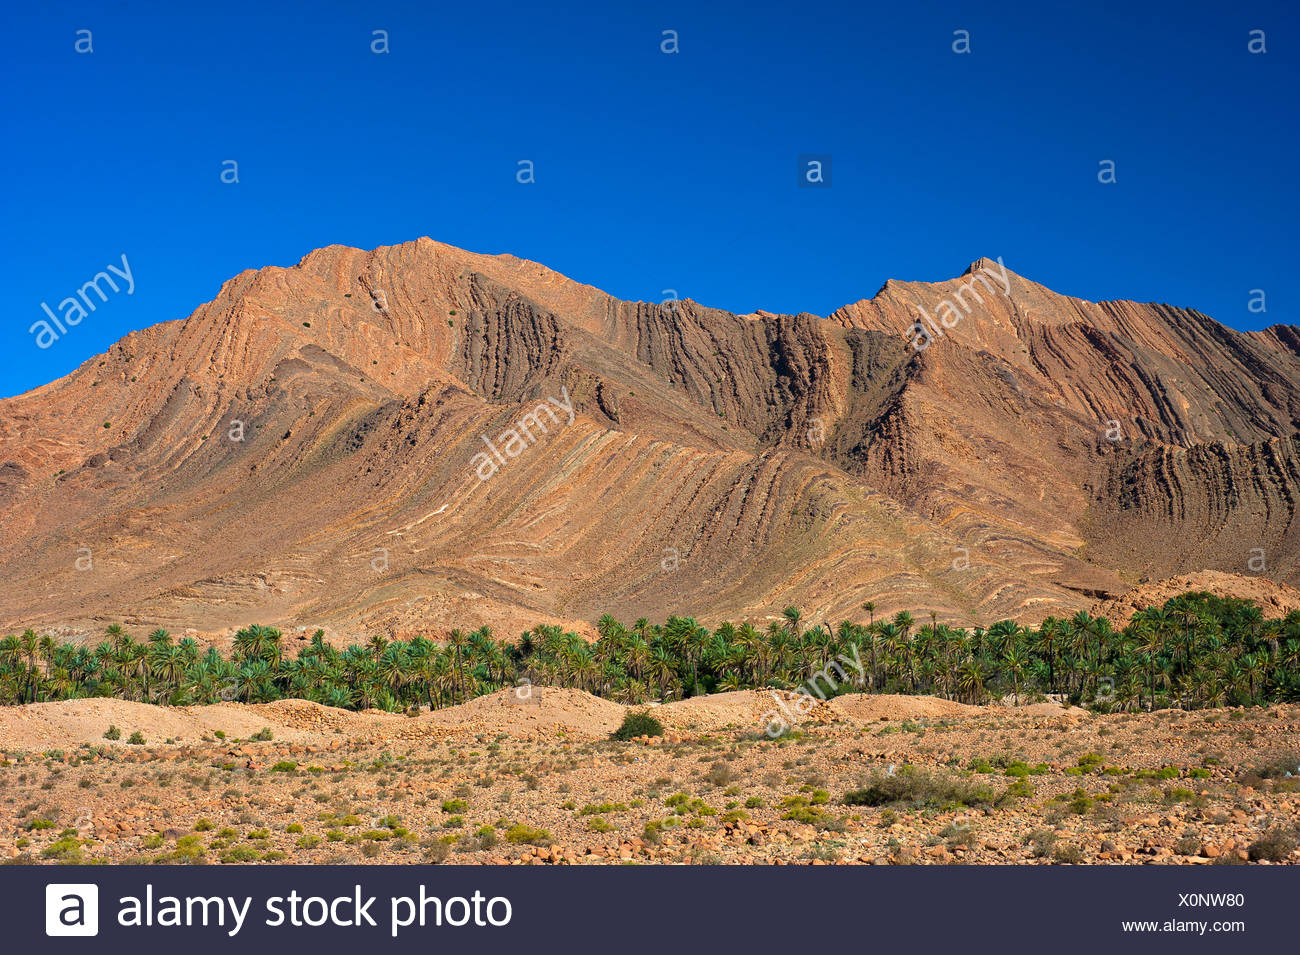 Imposing mountain landscape with eroded hillsides in the Ait Mansour Valley, date palms growing in the dry river bed - Stock Image